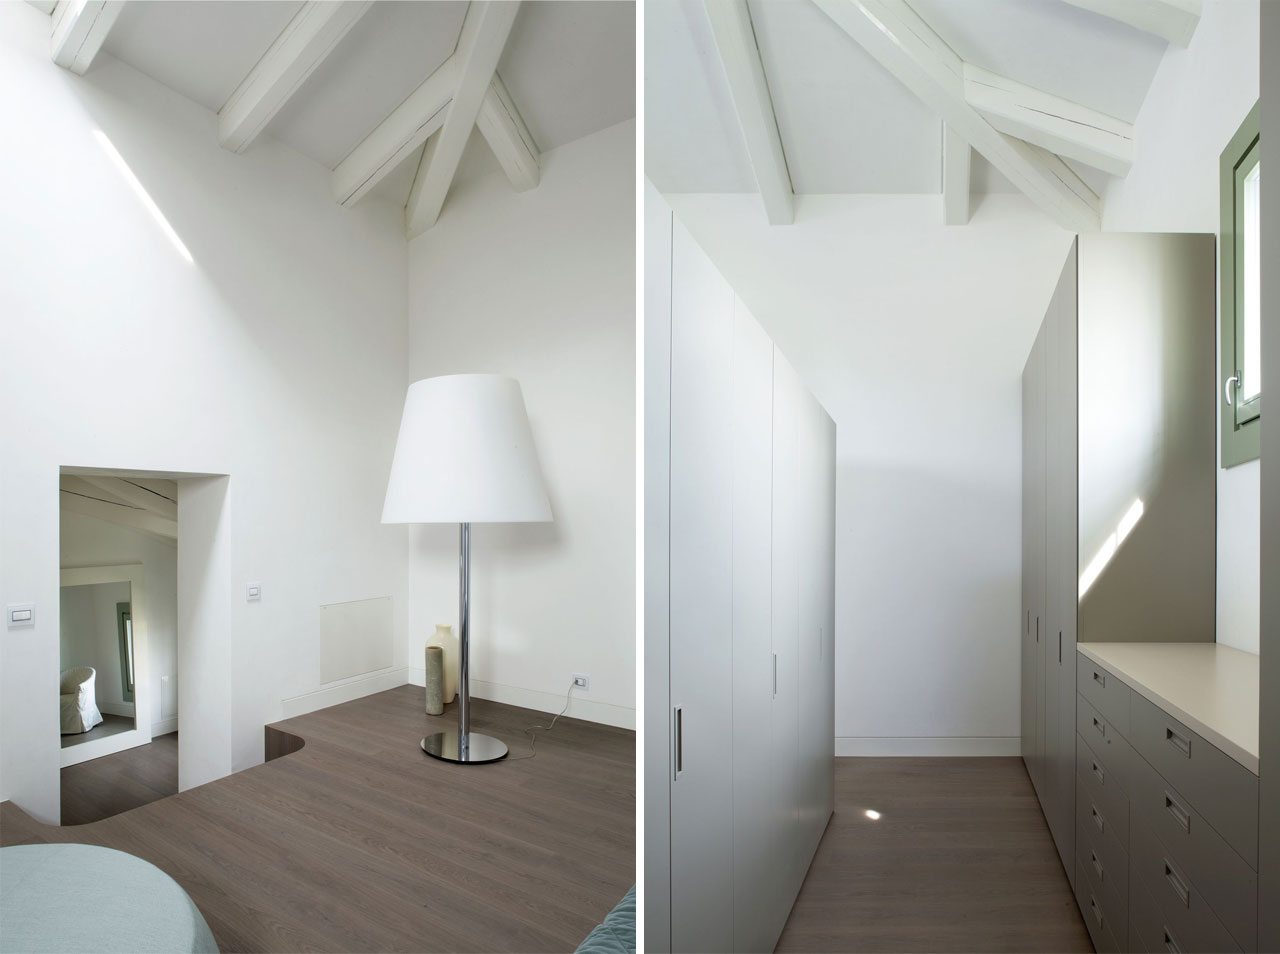 Stairs leading to the master bedroom and wardrobes behind the headboard. Photo: Courtesy Arredo Dal Pozzo